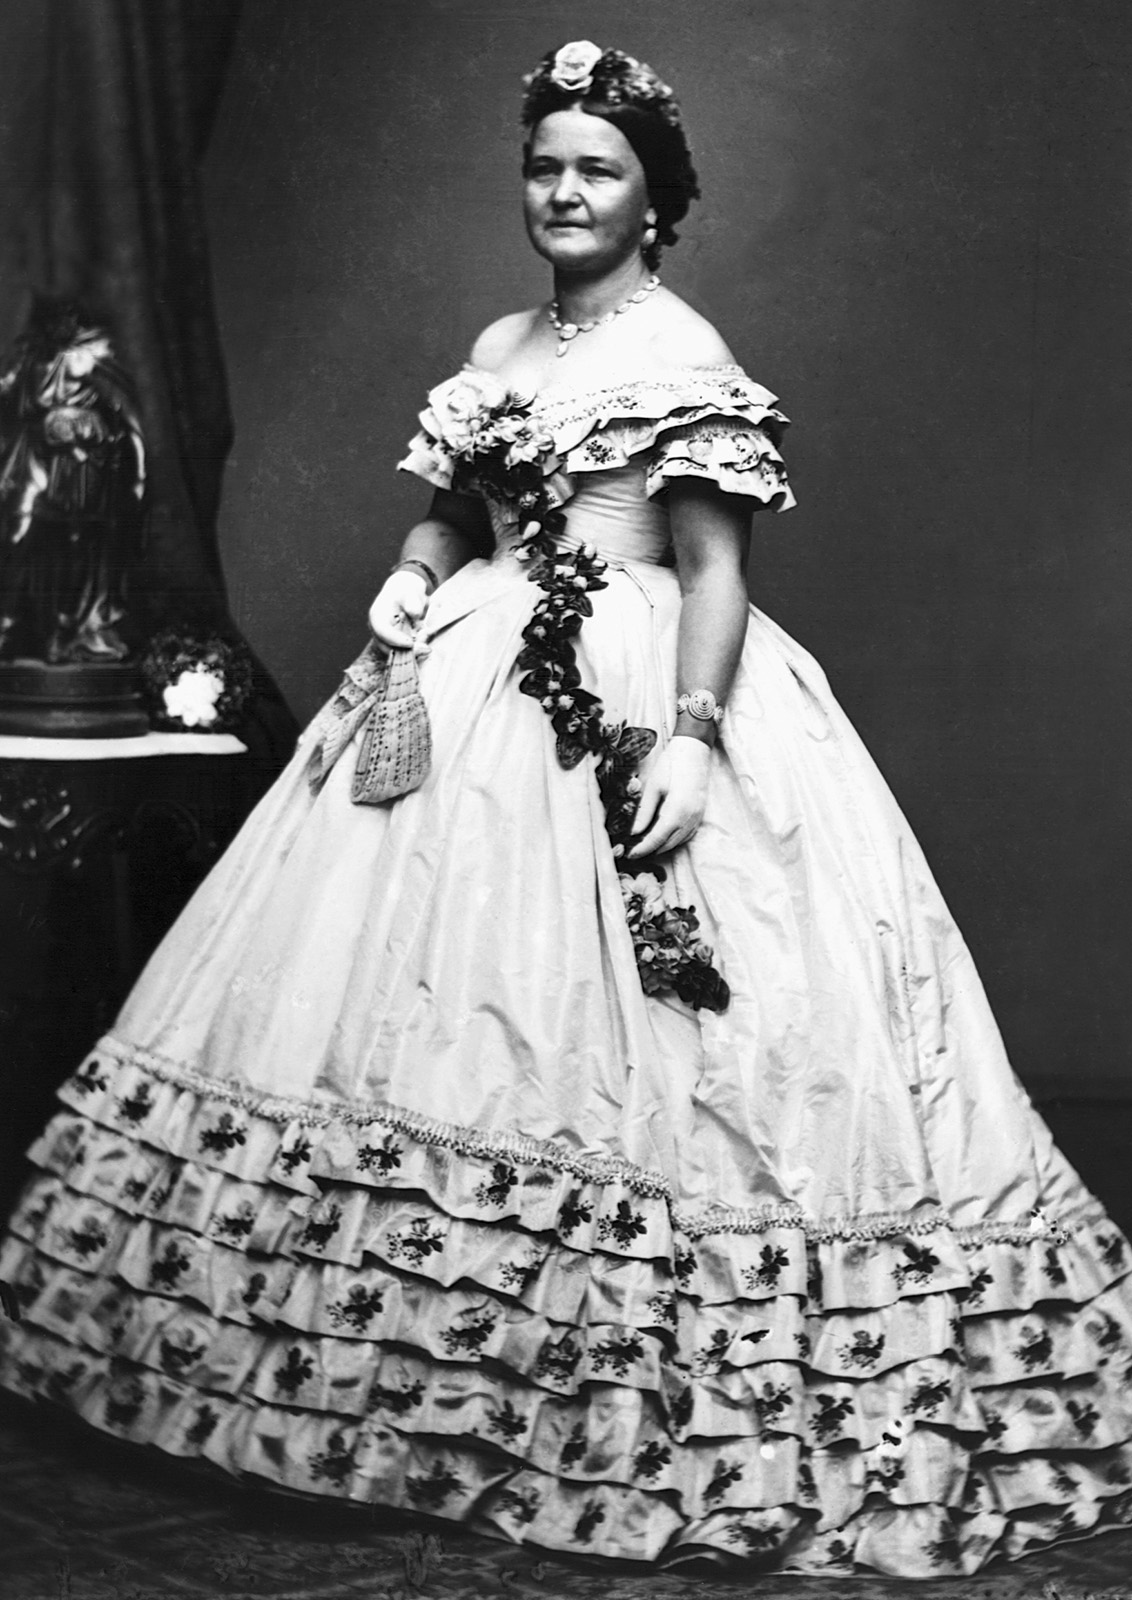 Mary Todd Lincoln (1818-1882). (Credit: Corbis/Getty Images)